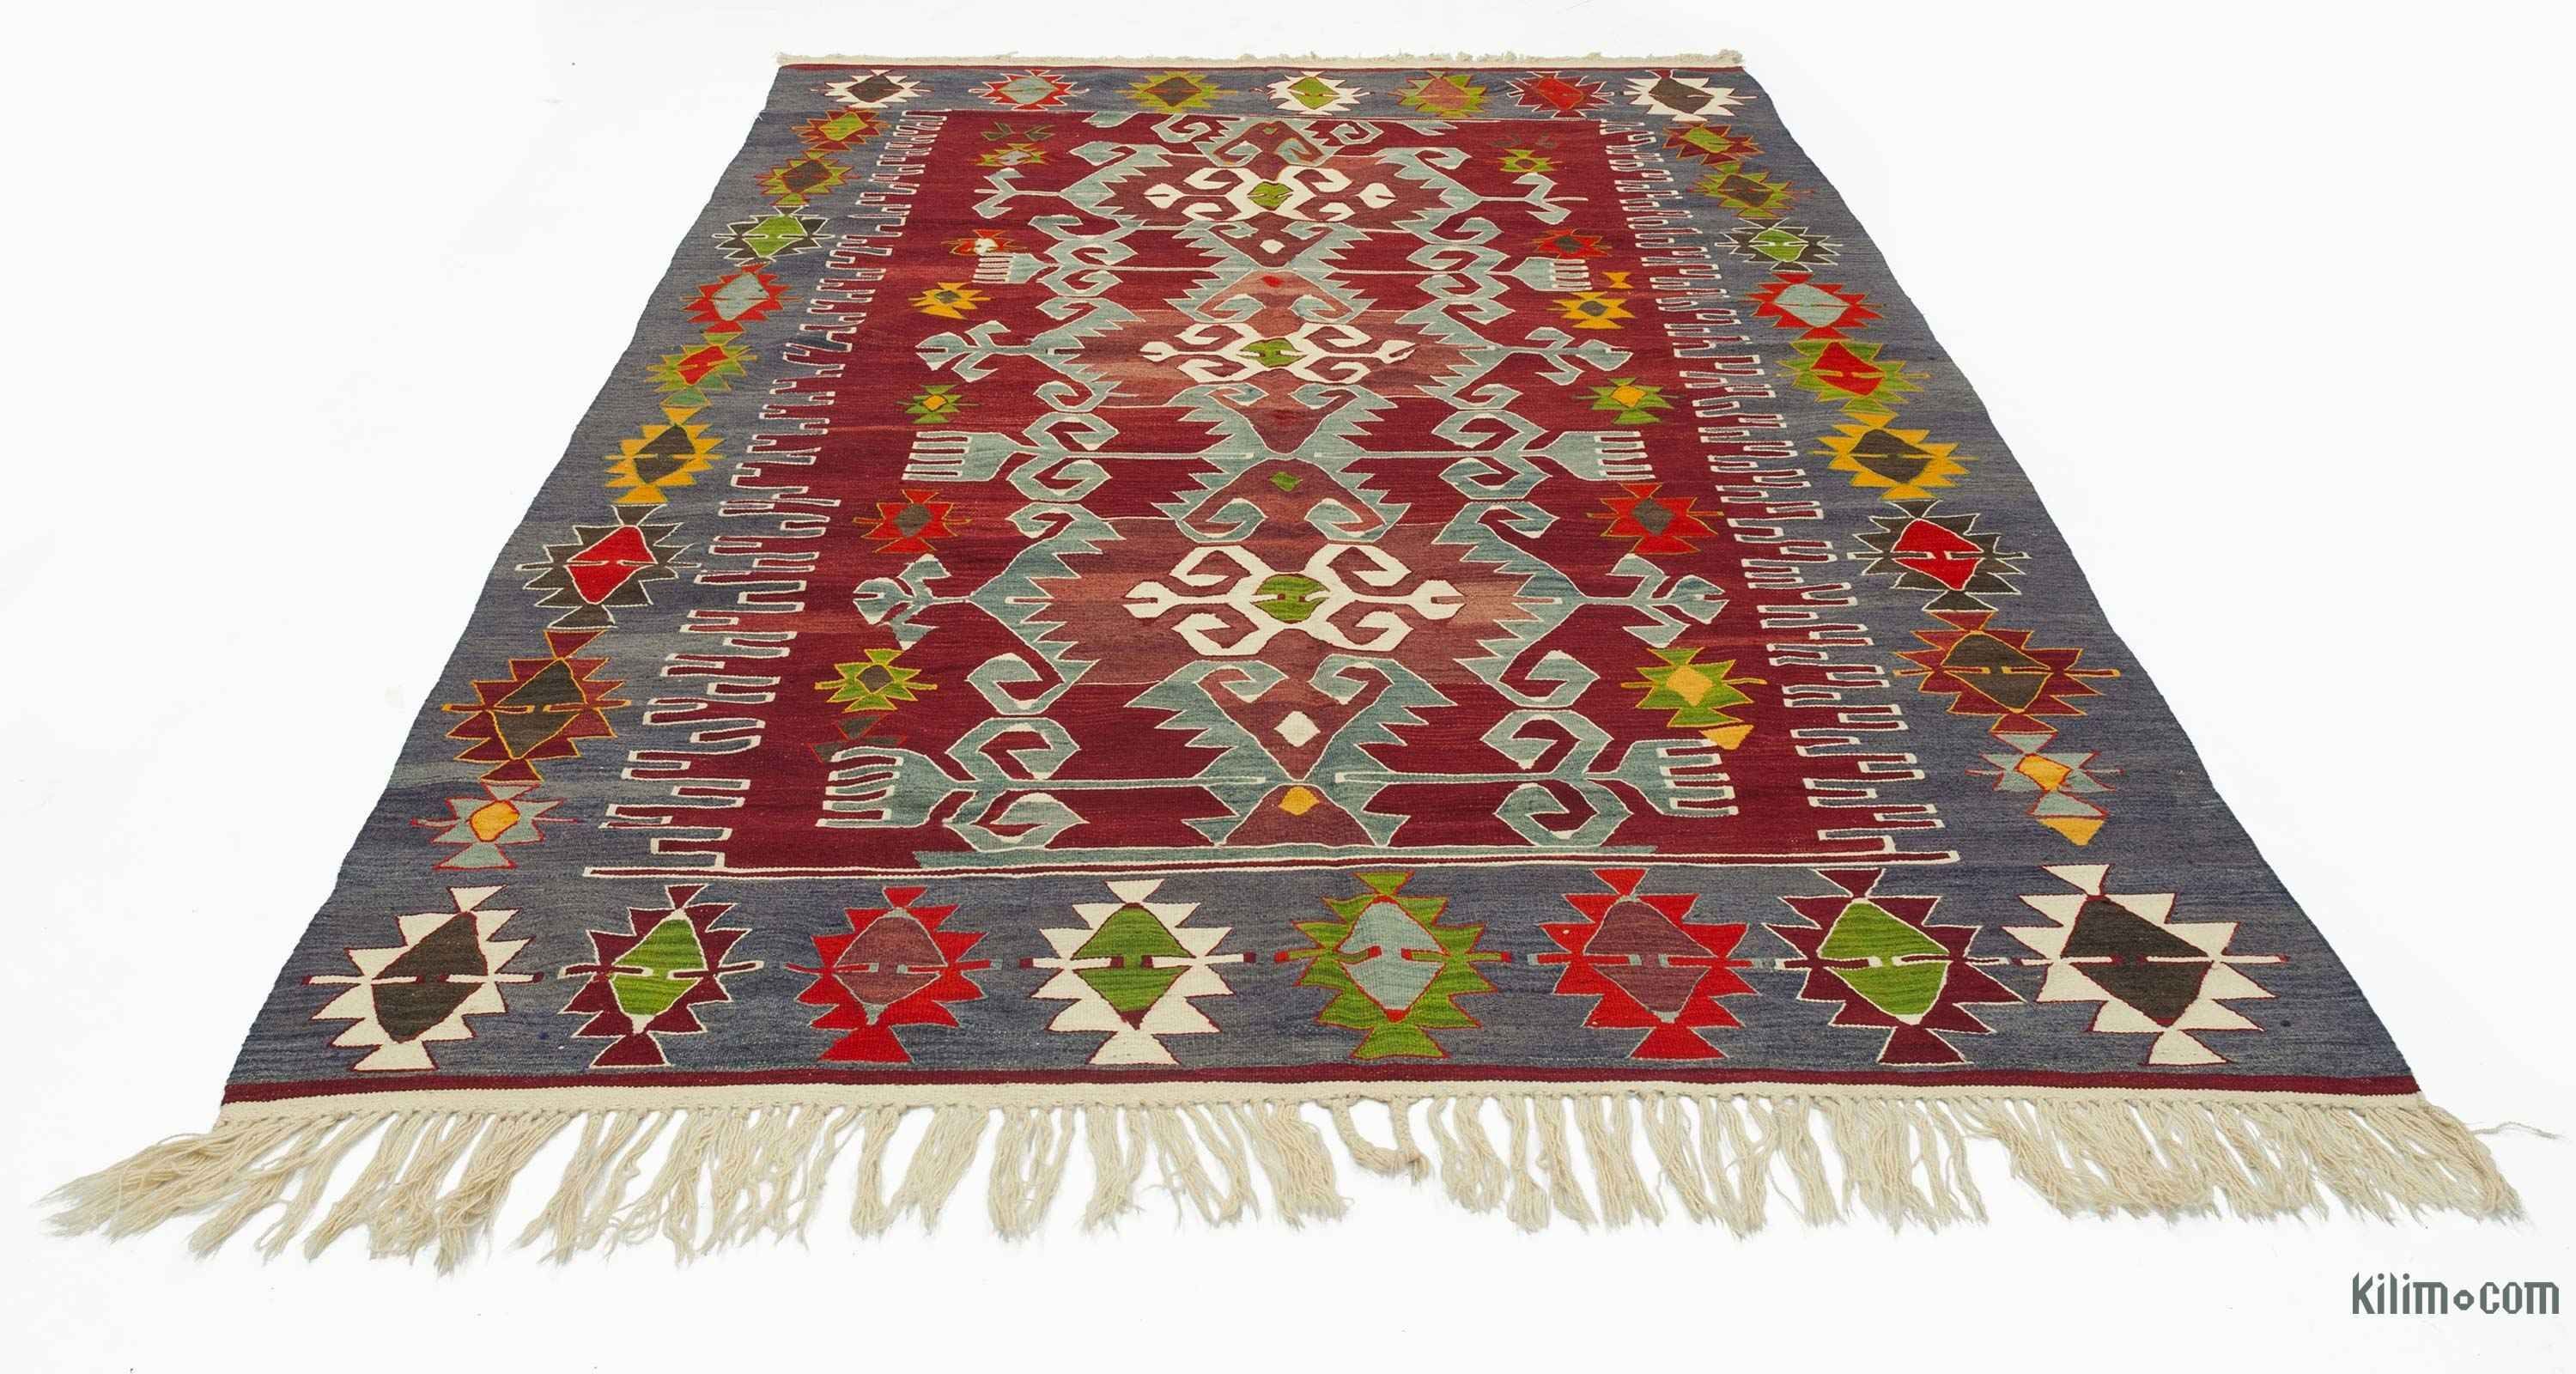 K0027281 Red Blue Vintage Ushak Kilim Rug Com The Source For Authentic Rugs Kilims Overdyed Oriental Hand Woven Turkish